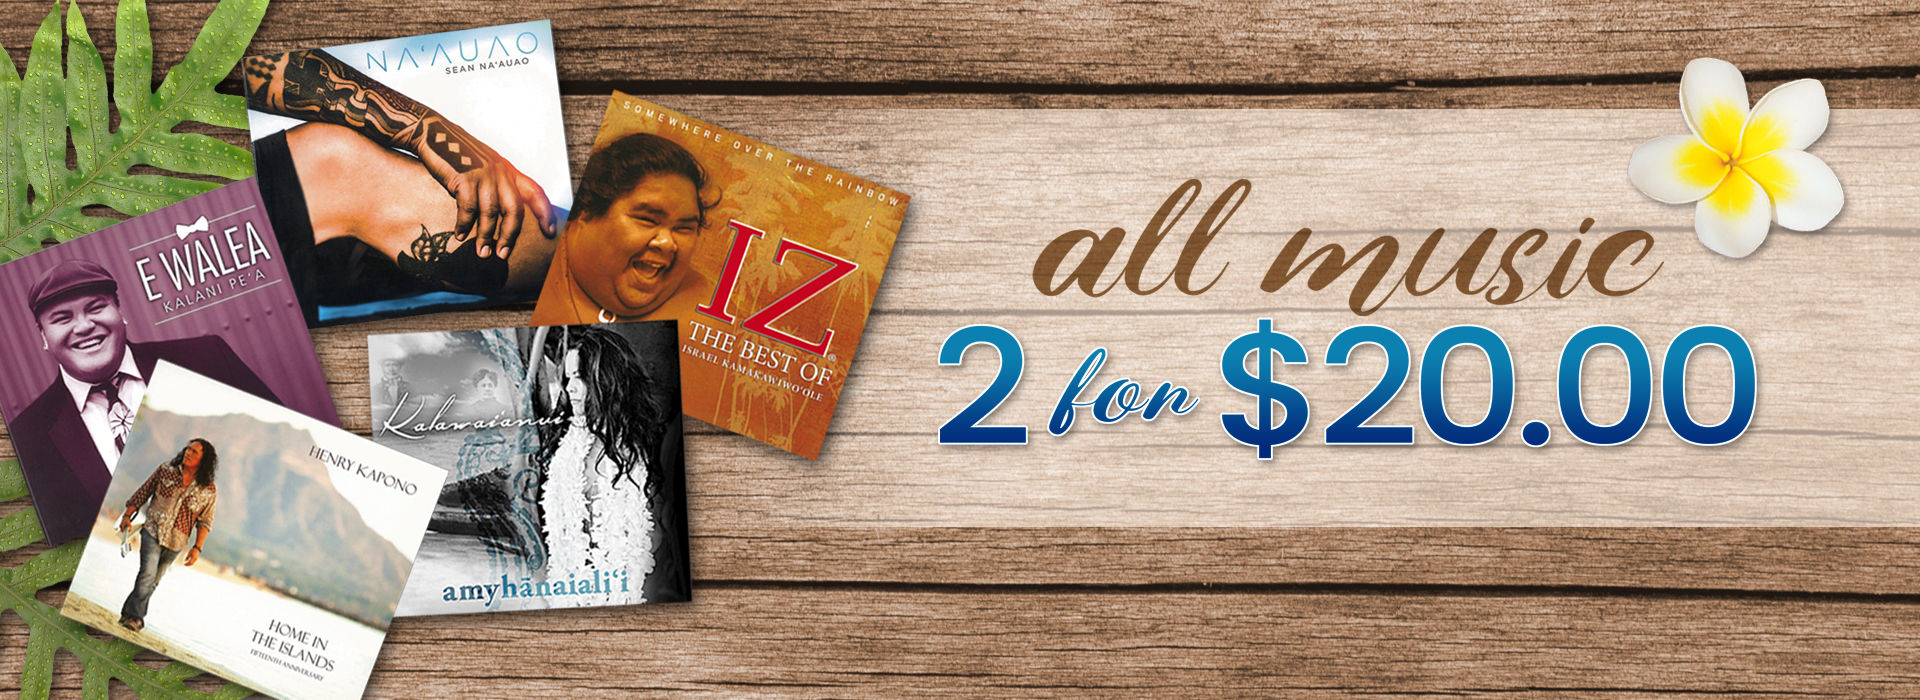 2 CD's for $20.00 sail!